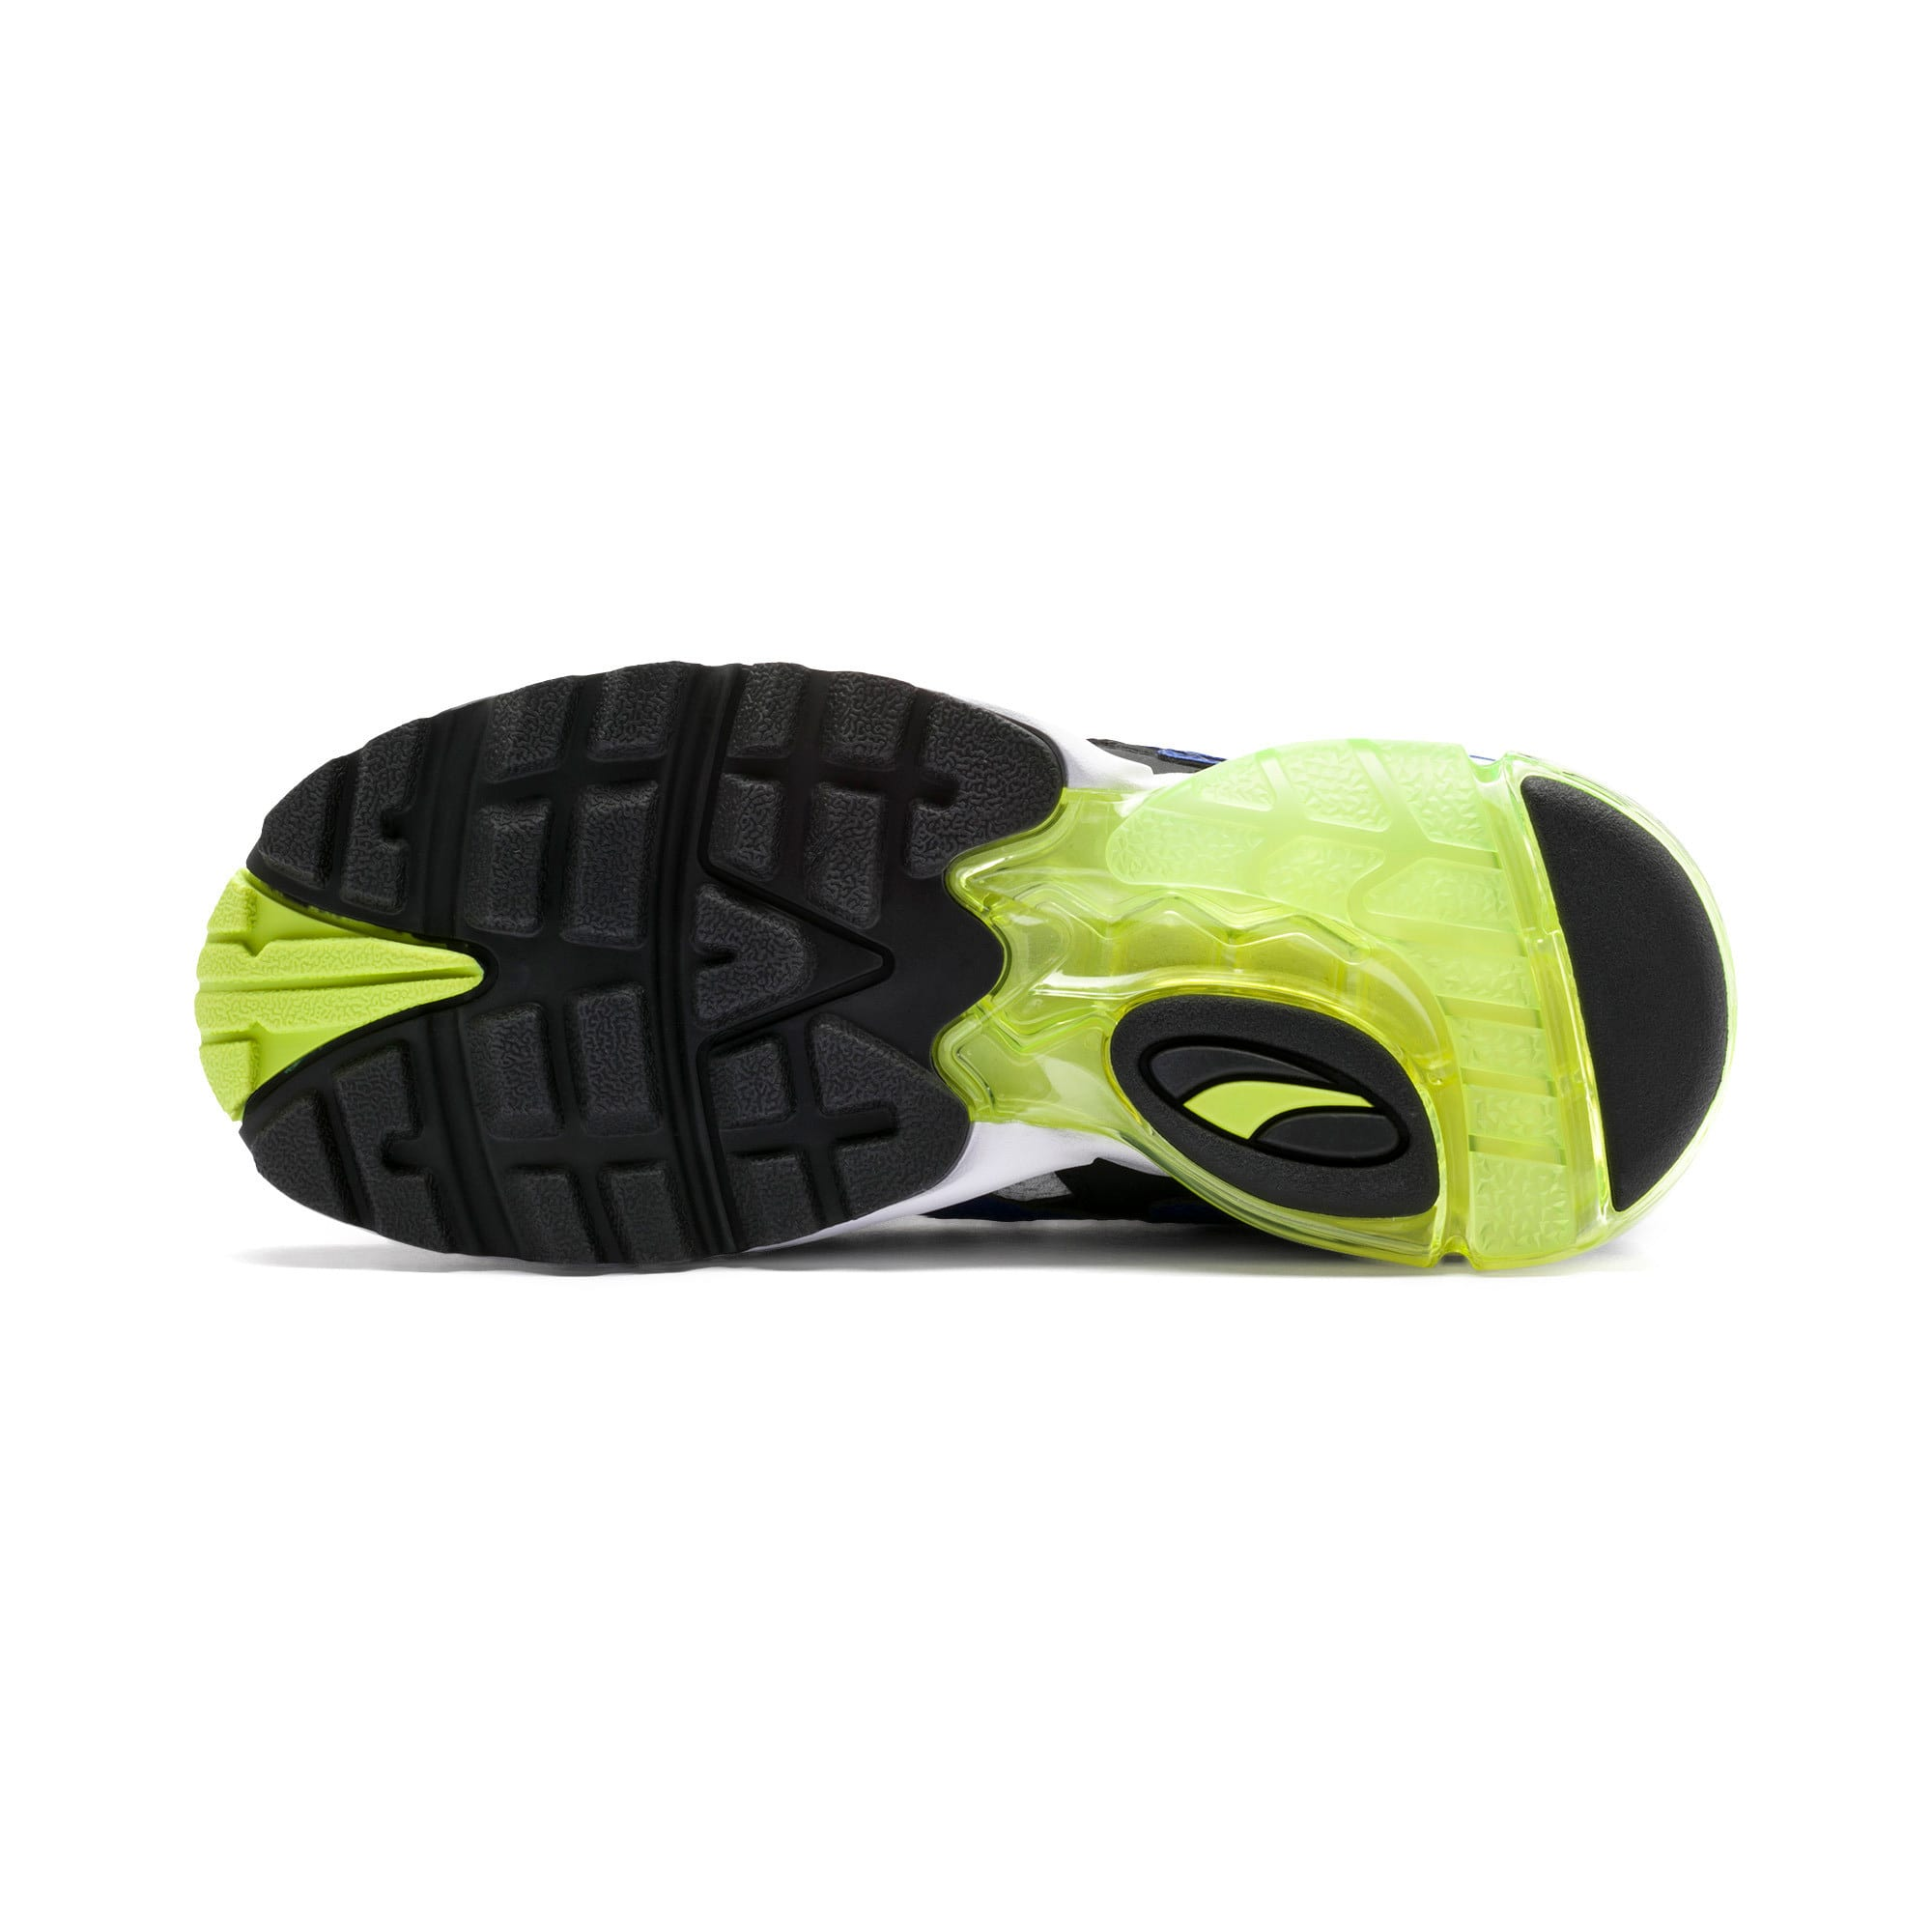 Thumbnail 4 of CELL Alien Kids' Trainers, Puma Black-Surf The Web, medium-IND